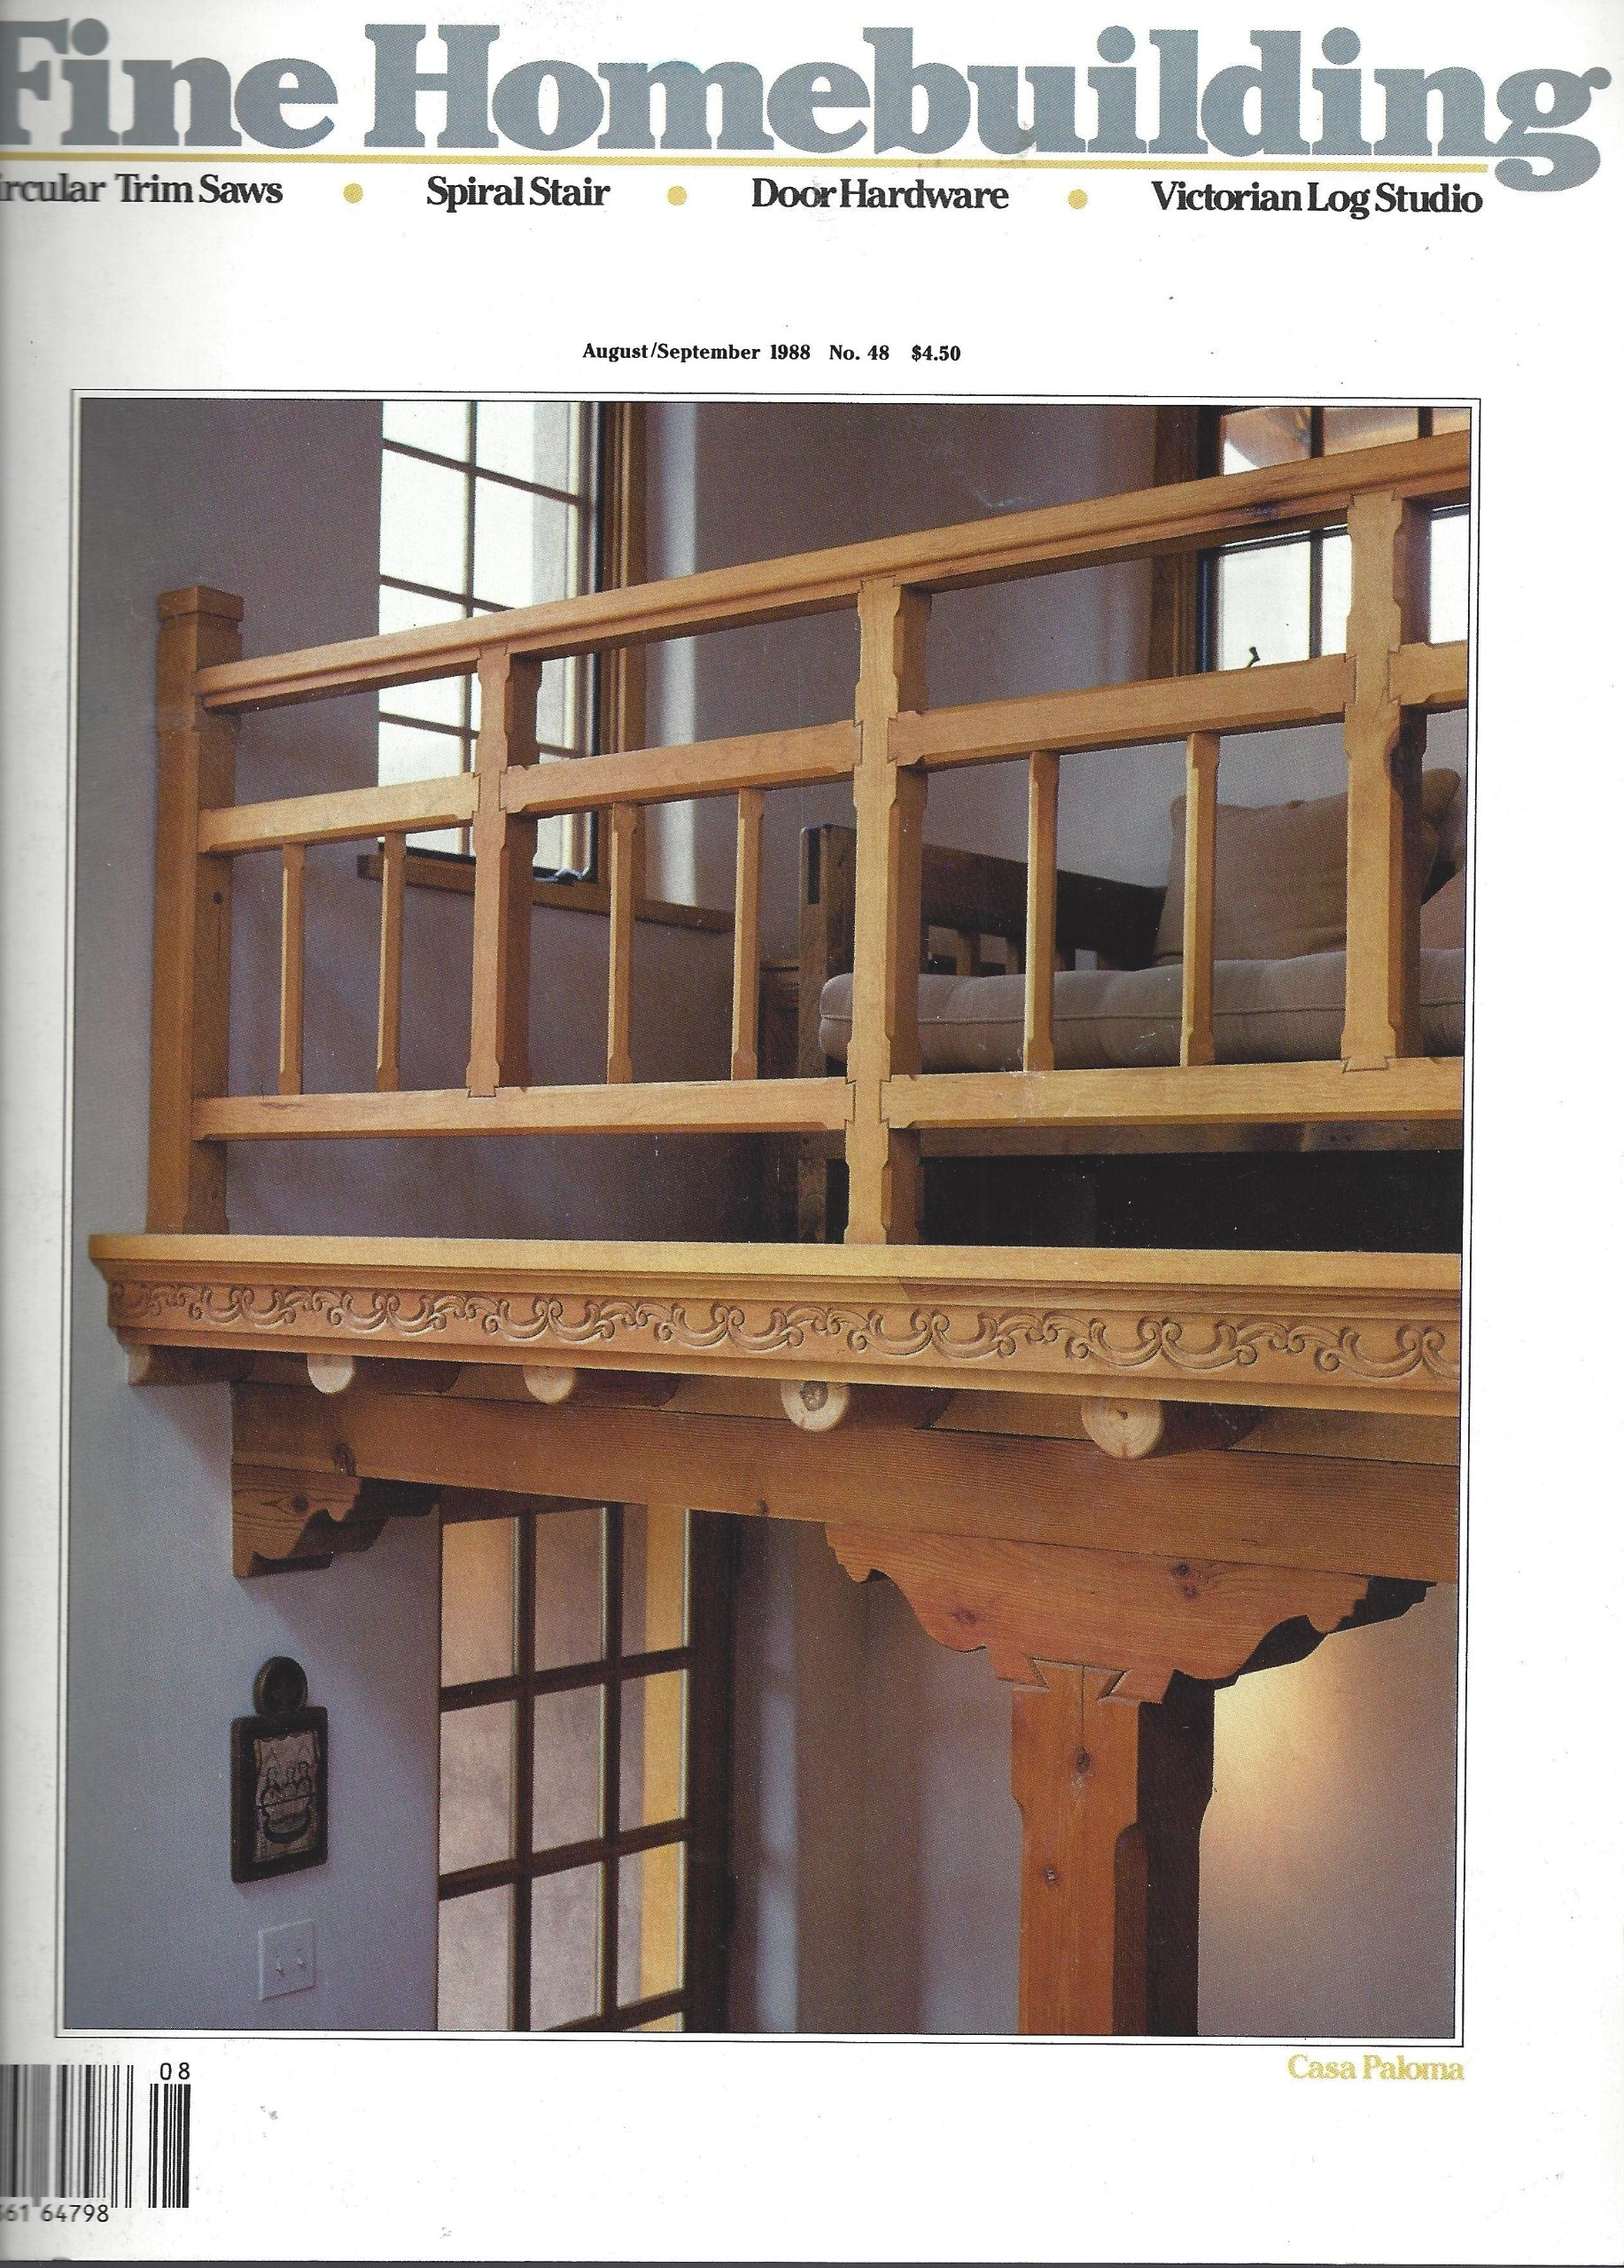 Fine Homebuilding Casa Paloma Hollow Post Spiral Stair   Building A Spiral Staircase Wood   Attic Stairs   Staircase Ideas   Outdoor Spiral   Curved Staircase Design   Attic Ladder